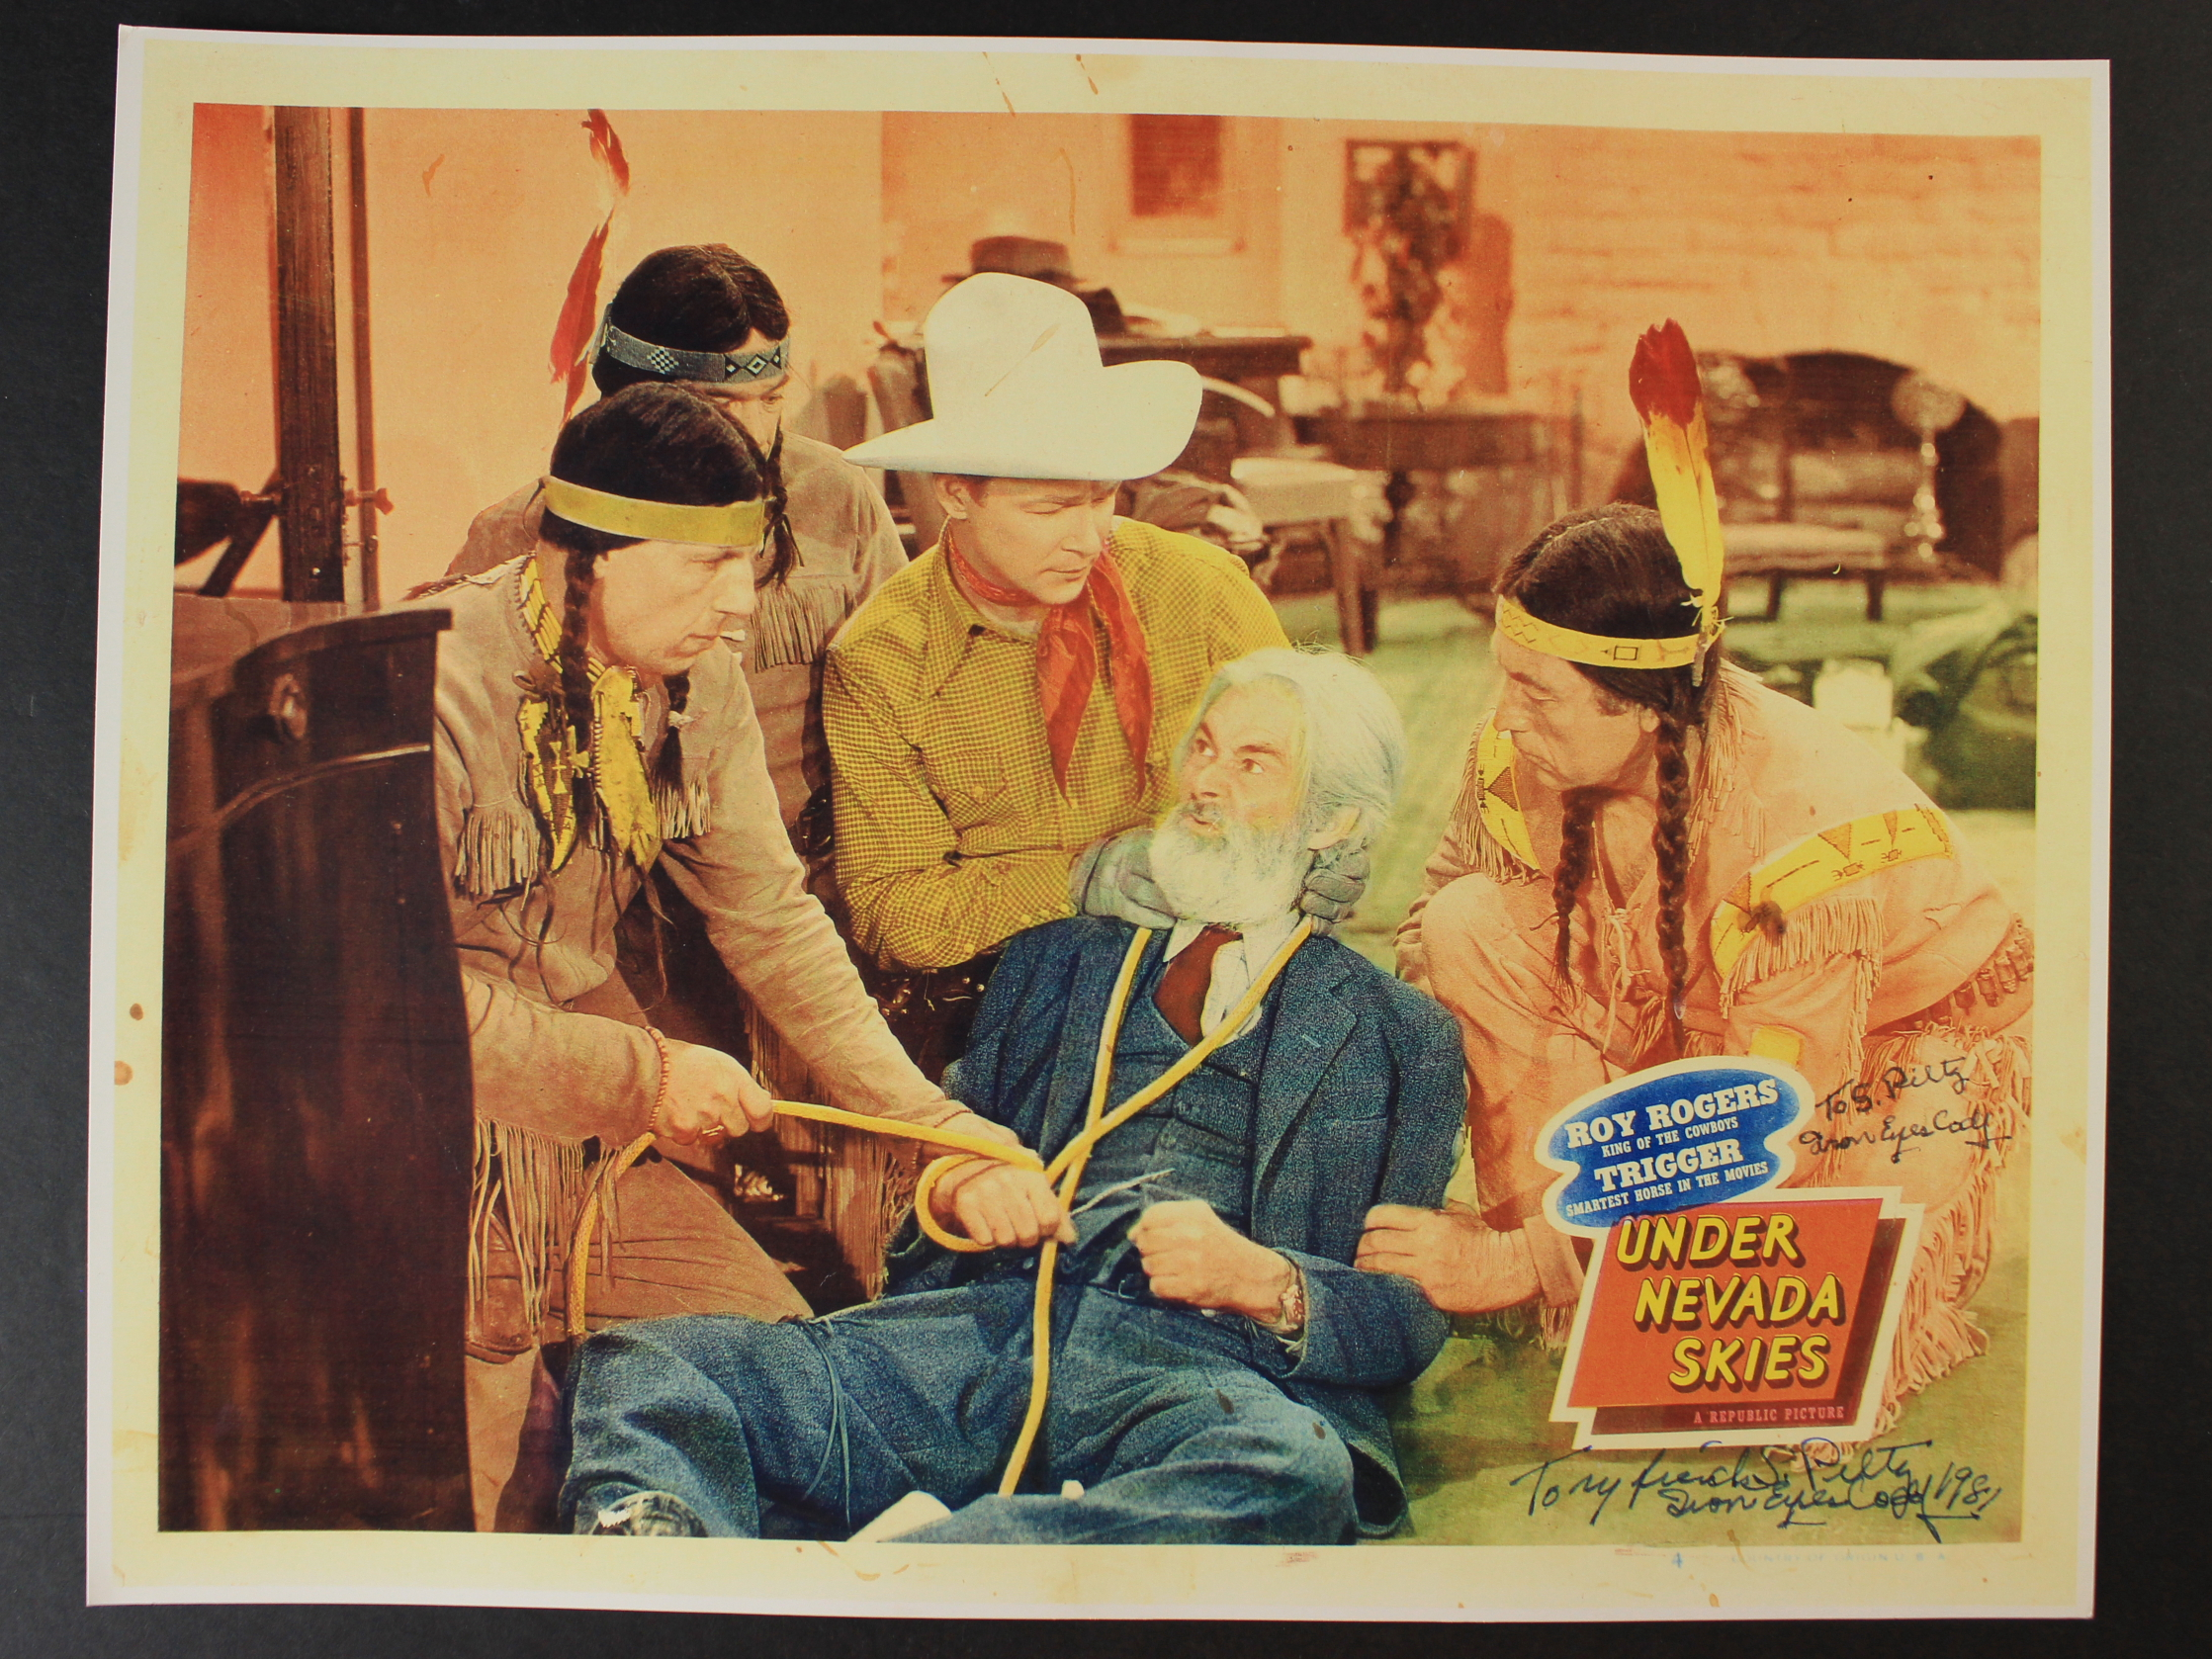 Roy Rogers, Iron Eyes Cody, and George 'Gabby' Hayes in Under Nevada Skies (1946)